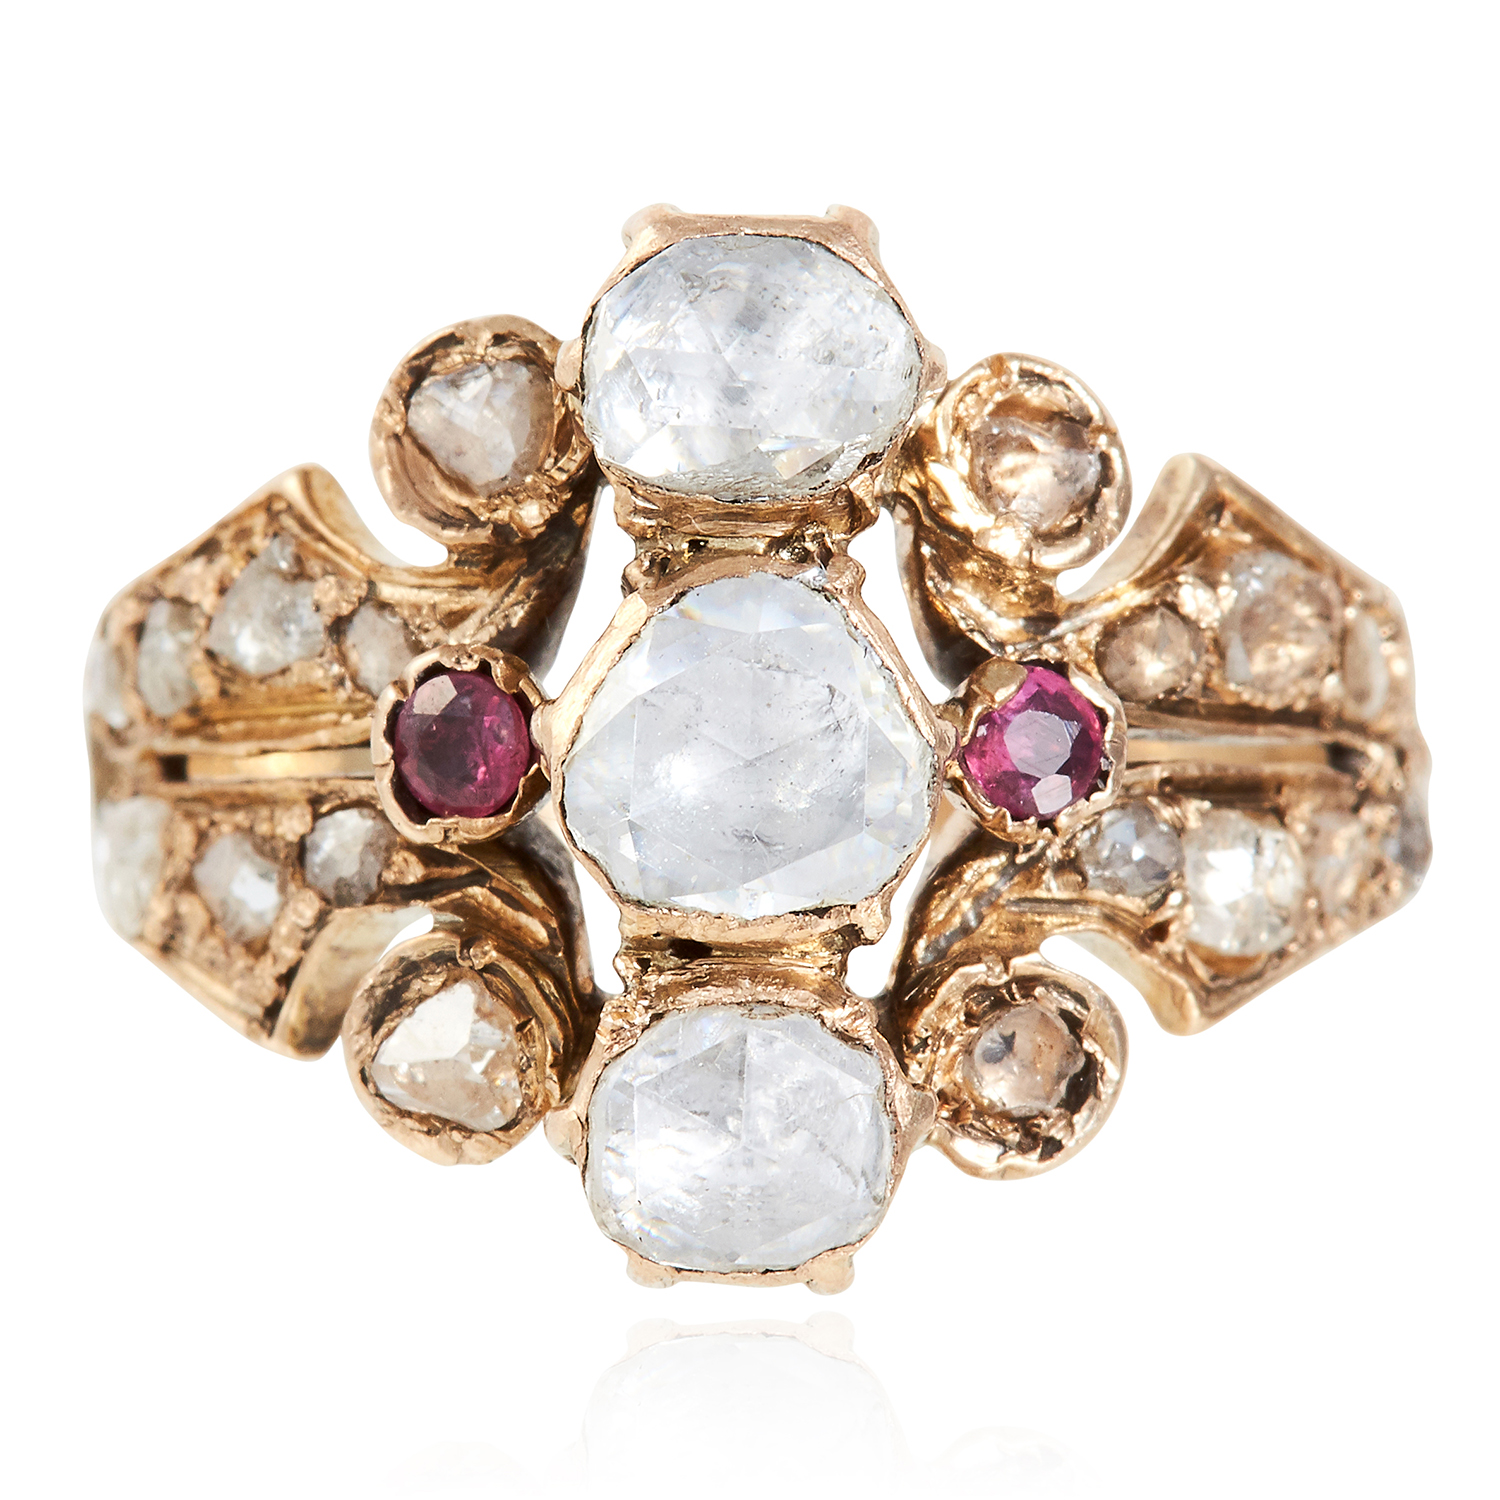 Los 46 - AN ANTIQUE DIAMOND AND RUBY DRESS RING, 19TH CENTURY in yellow gold, set with three central rose cut